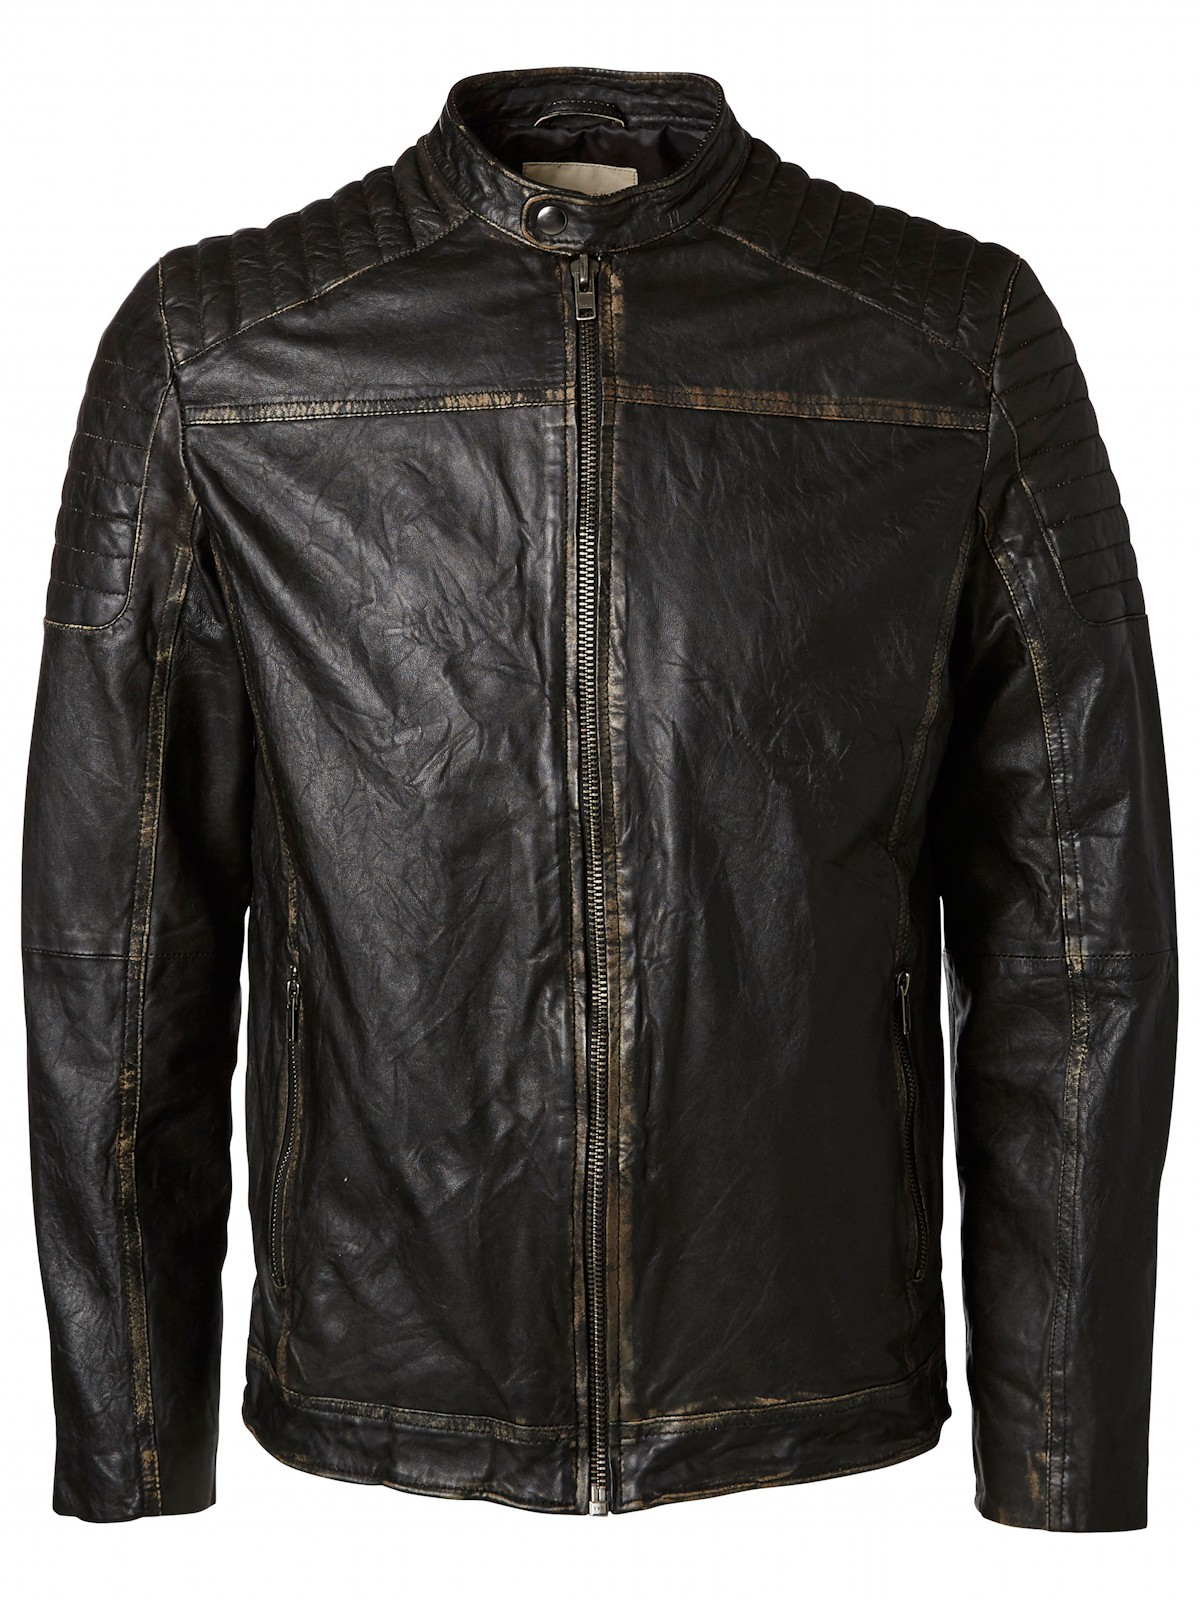 selected herren biker lederjacke shndestroy leather jacket. Black Bedroom Furniture Sets. Home Design Ideas